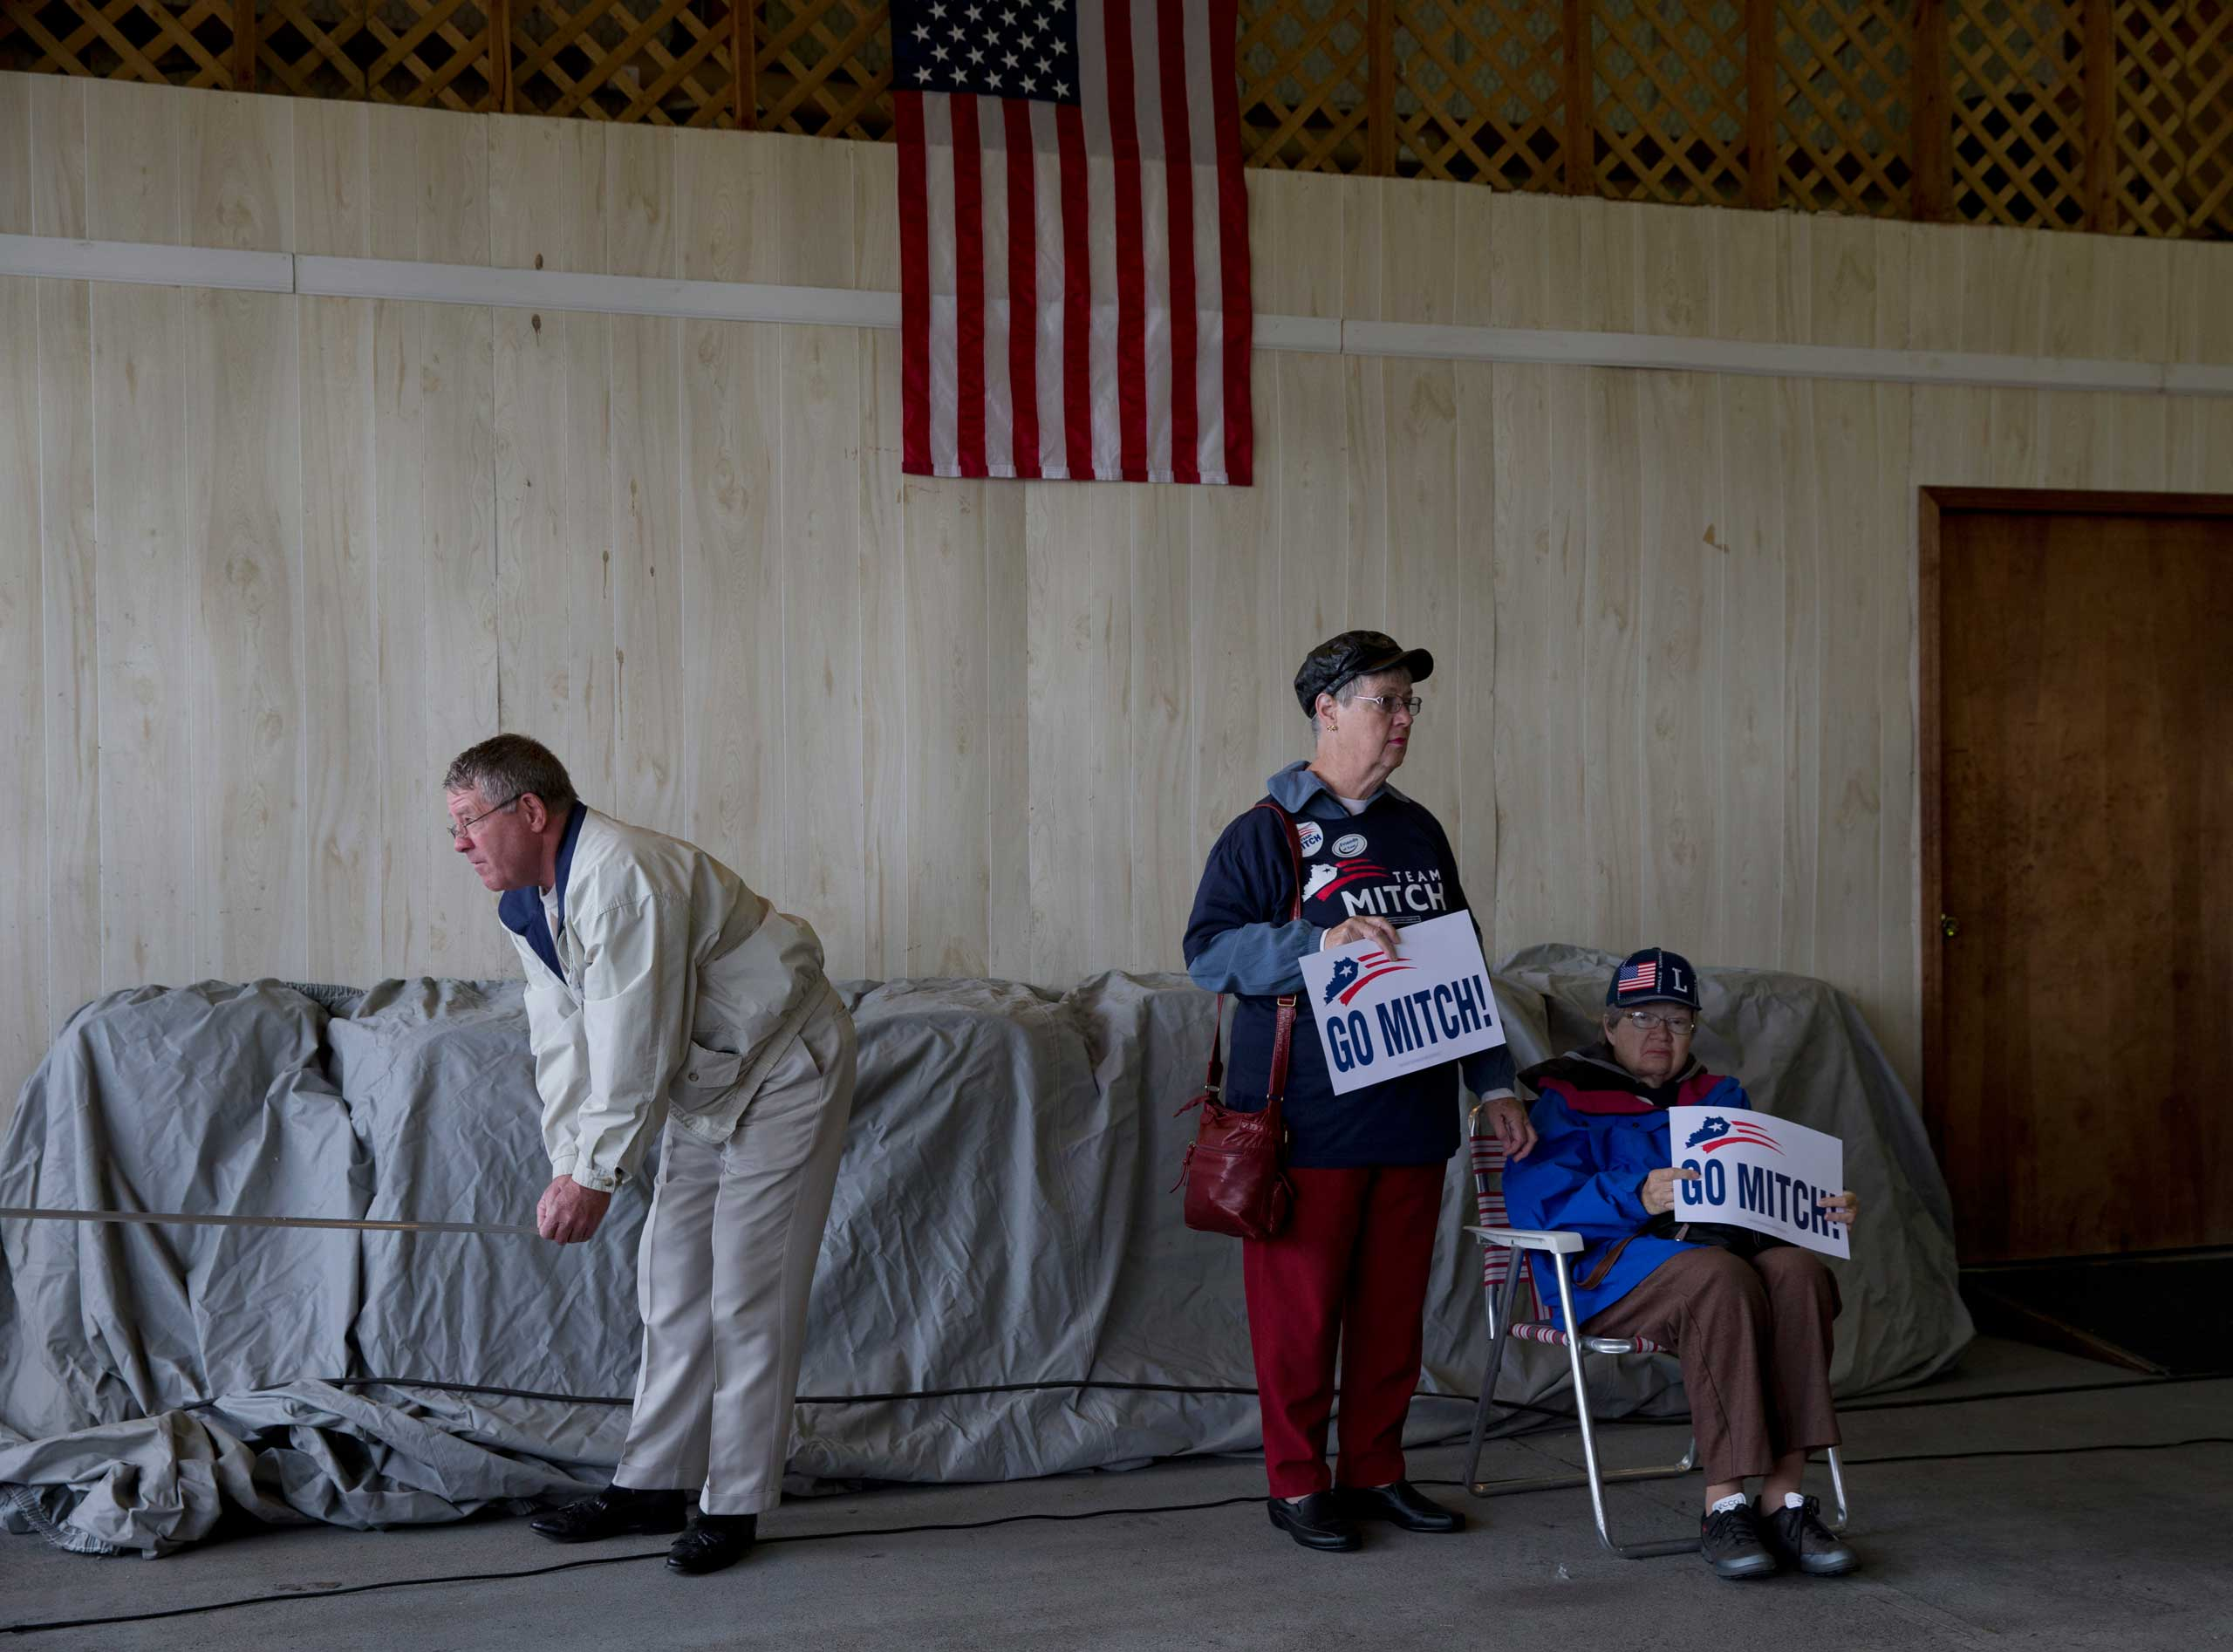 Supporters of Sen. Mitch McConnell attends a campaign rally at Bowman Field Air Hangar in Louisville, Ky. on Nov. 3, 2014.